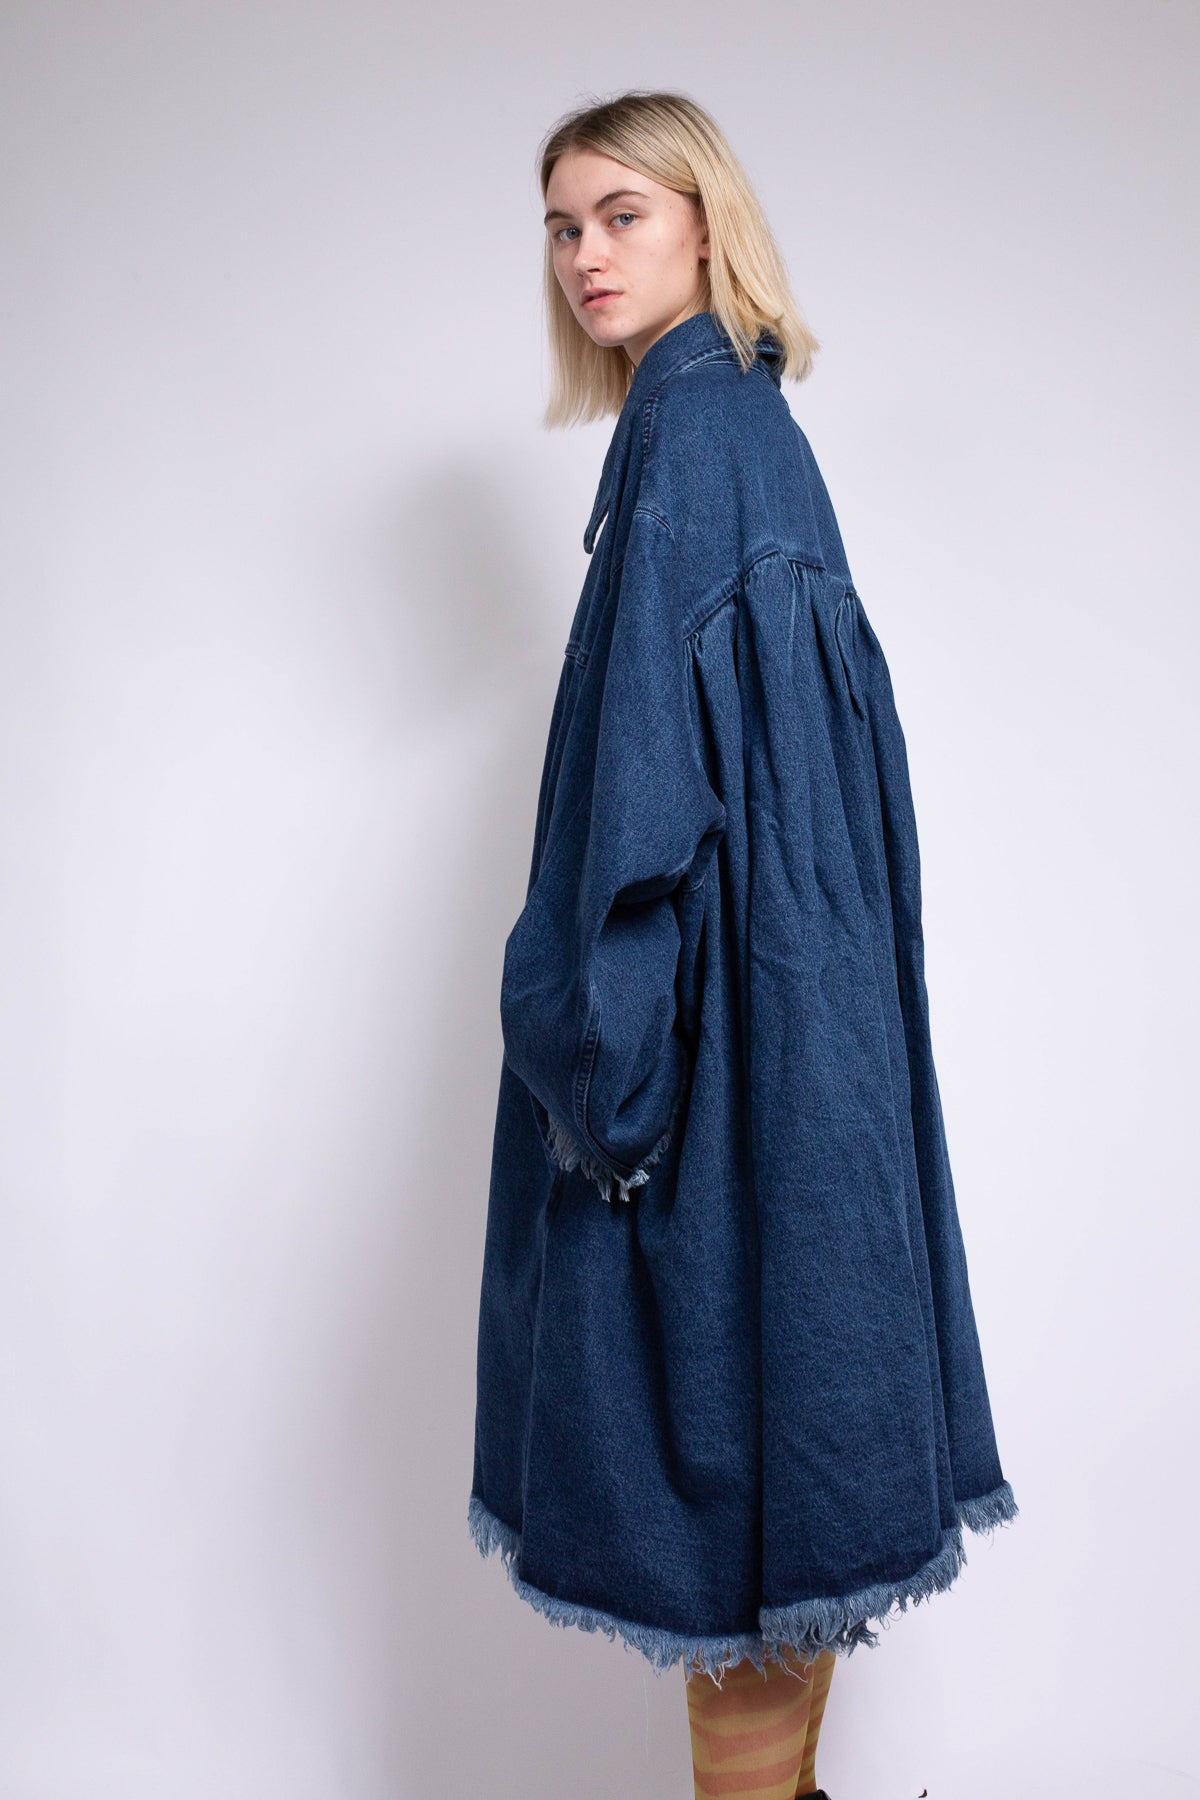 OVERSIZED COAT WITH PLEATED BACK IN BLUE DENIM - marques-almeida-dev